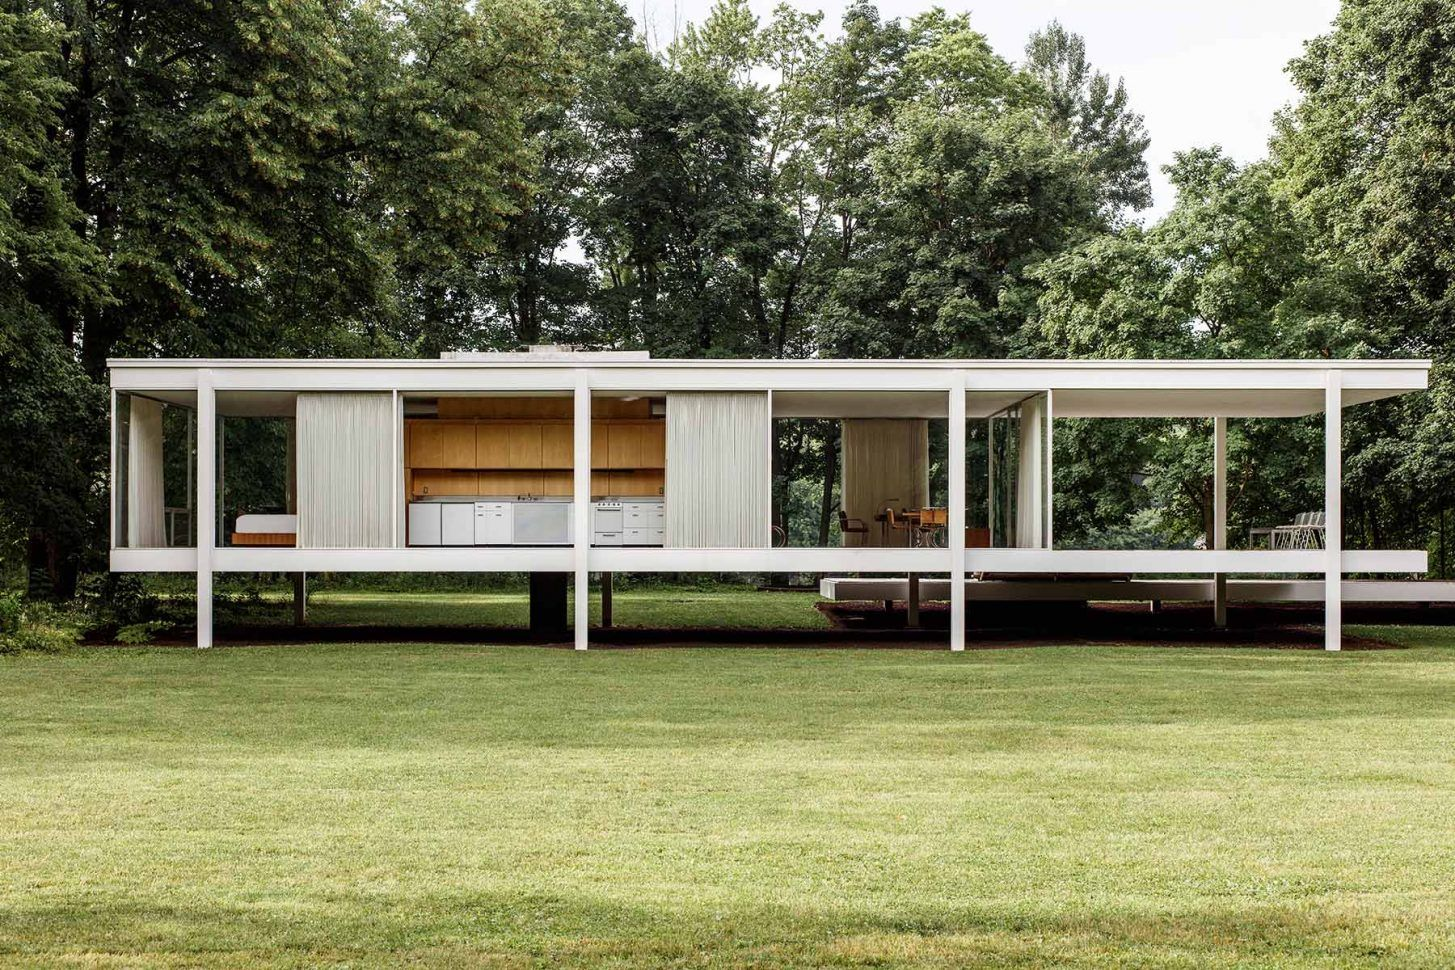 Farnsworth House in Cereal Magazine | a r c h i t e c t u r e ... on cardboard box house, cracker box house, making house, waffle box house,